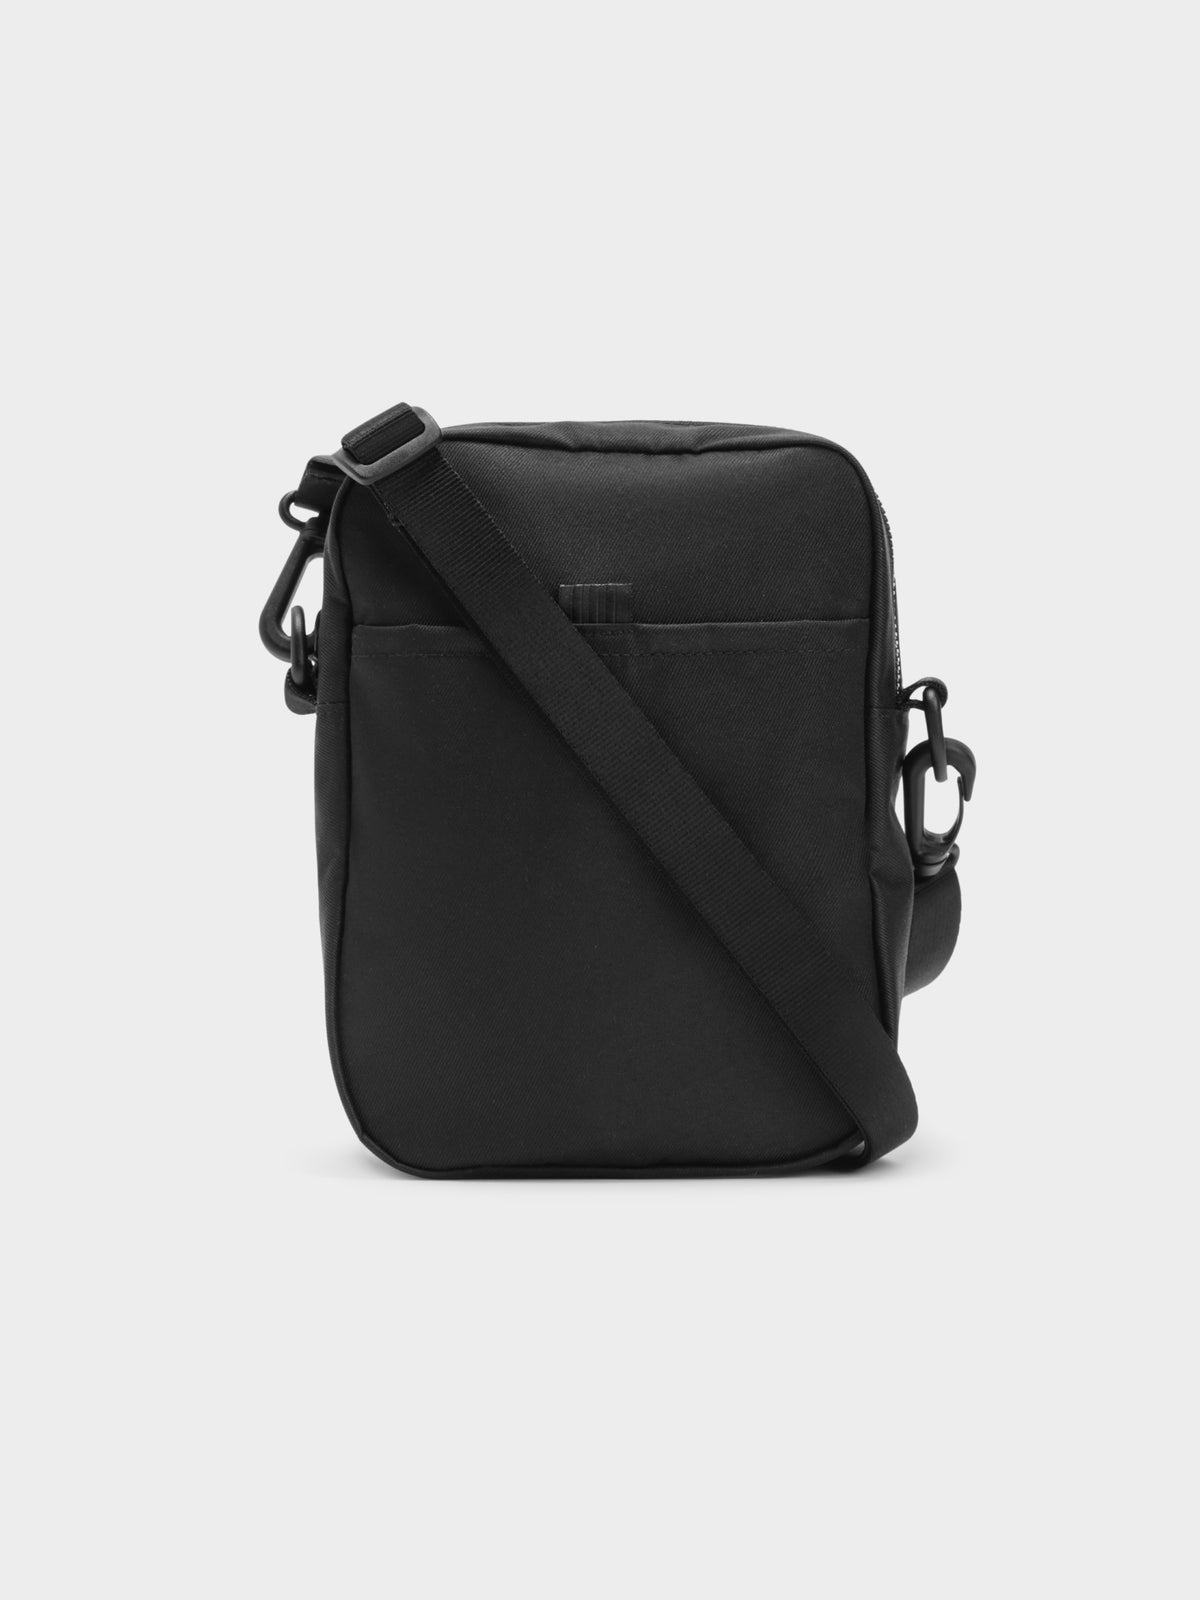 Sport Mini Bag in Black